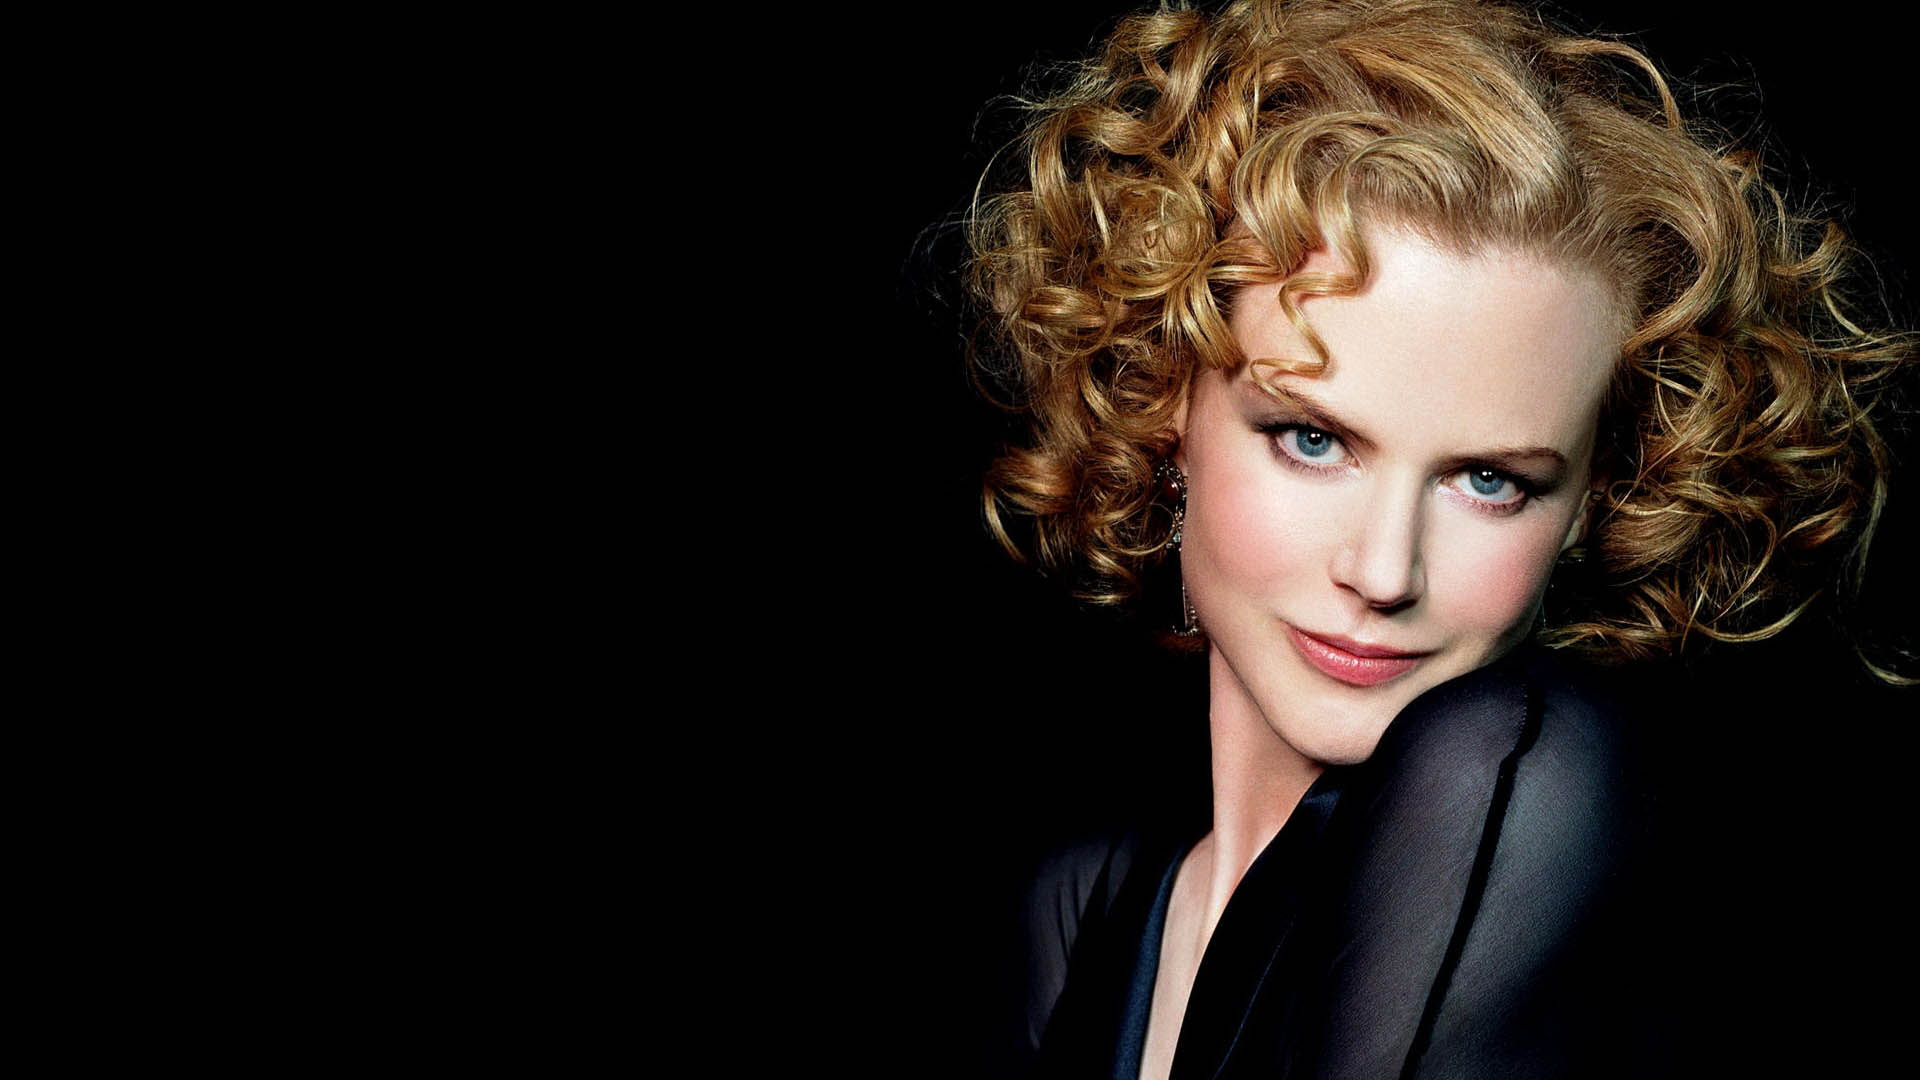 Nicole_Kidman_Wallpapers_HD_-_1920x1080_-_0017